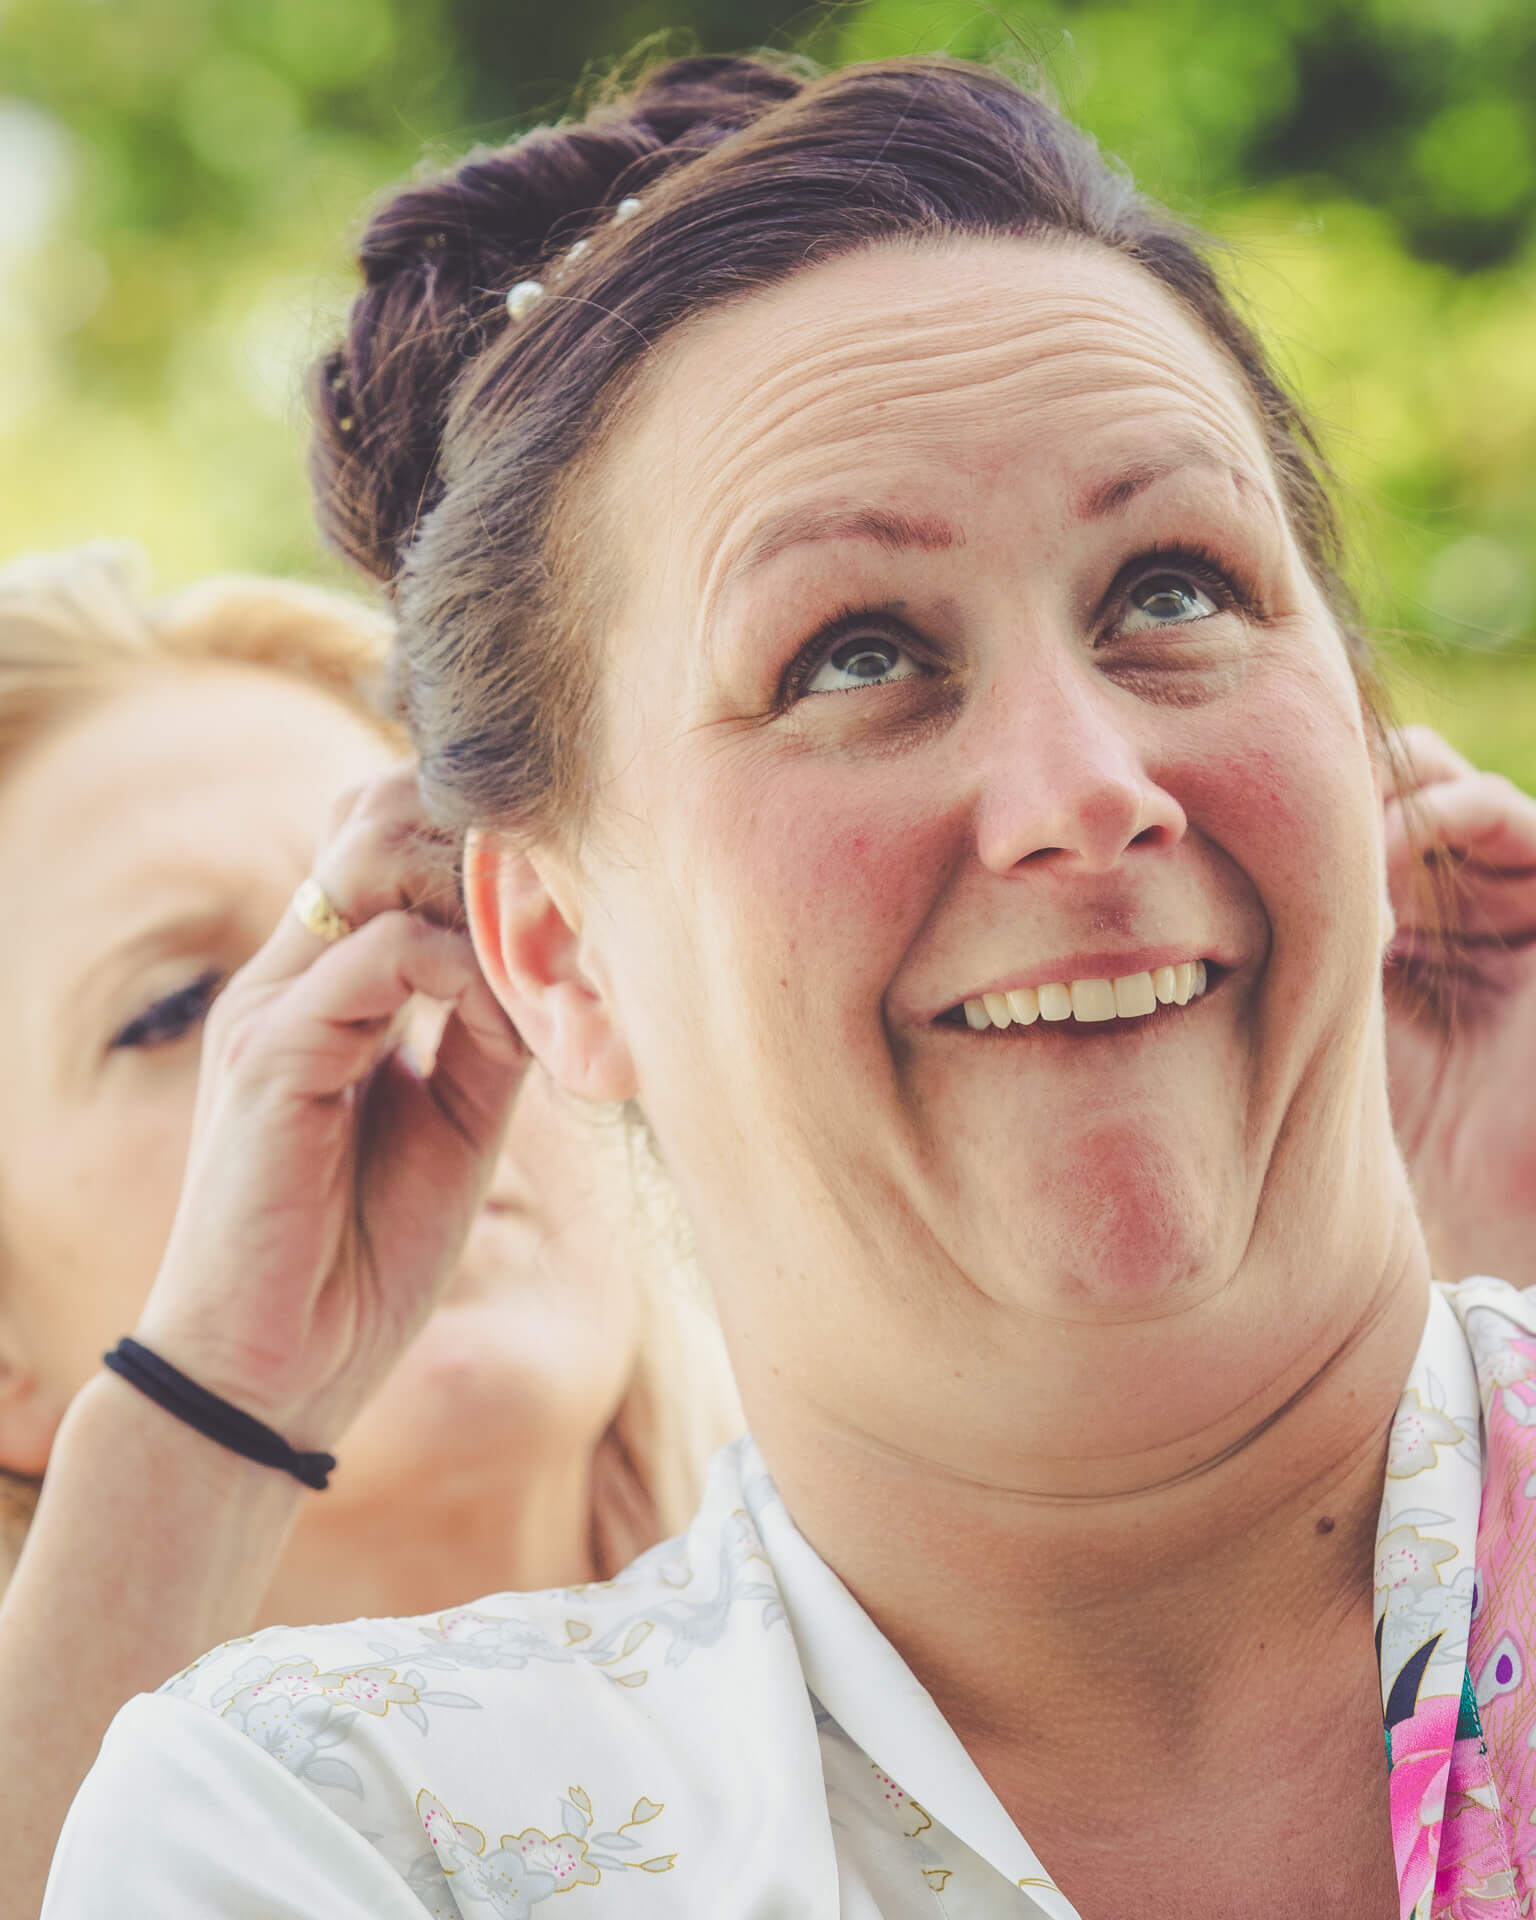 The Bride pulls a funny face whilst having her hair done as part of bridal preparations prior to the service starting.